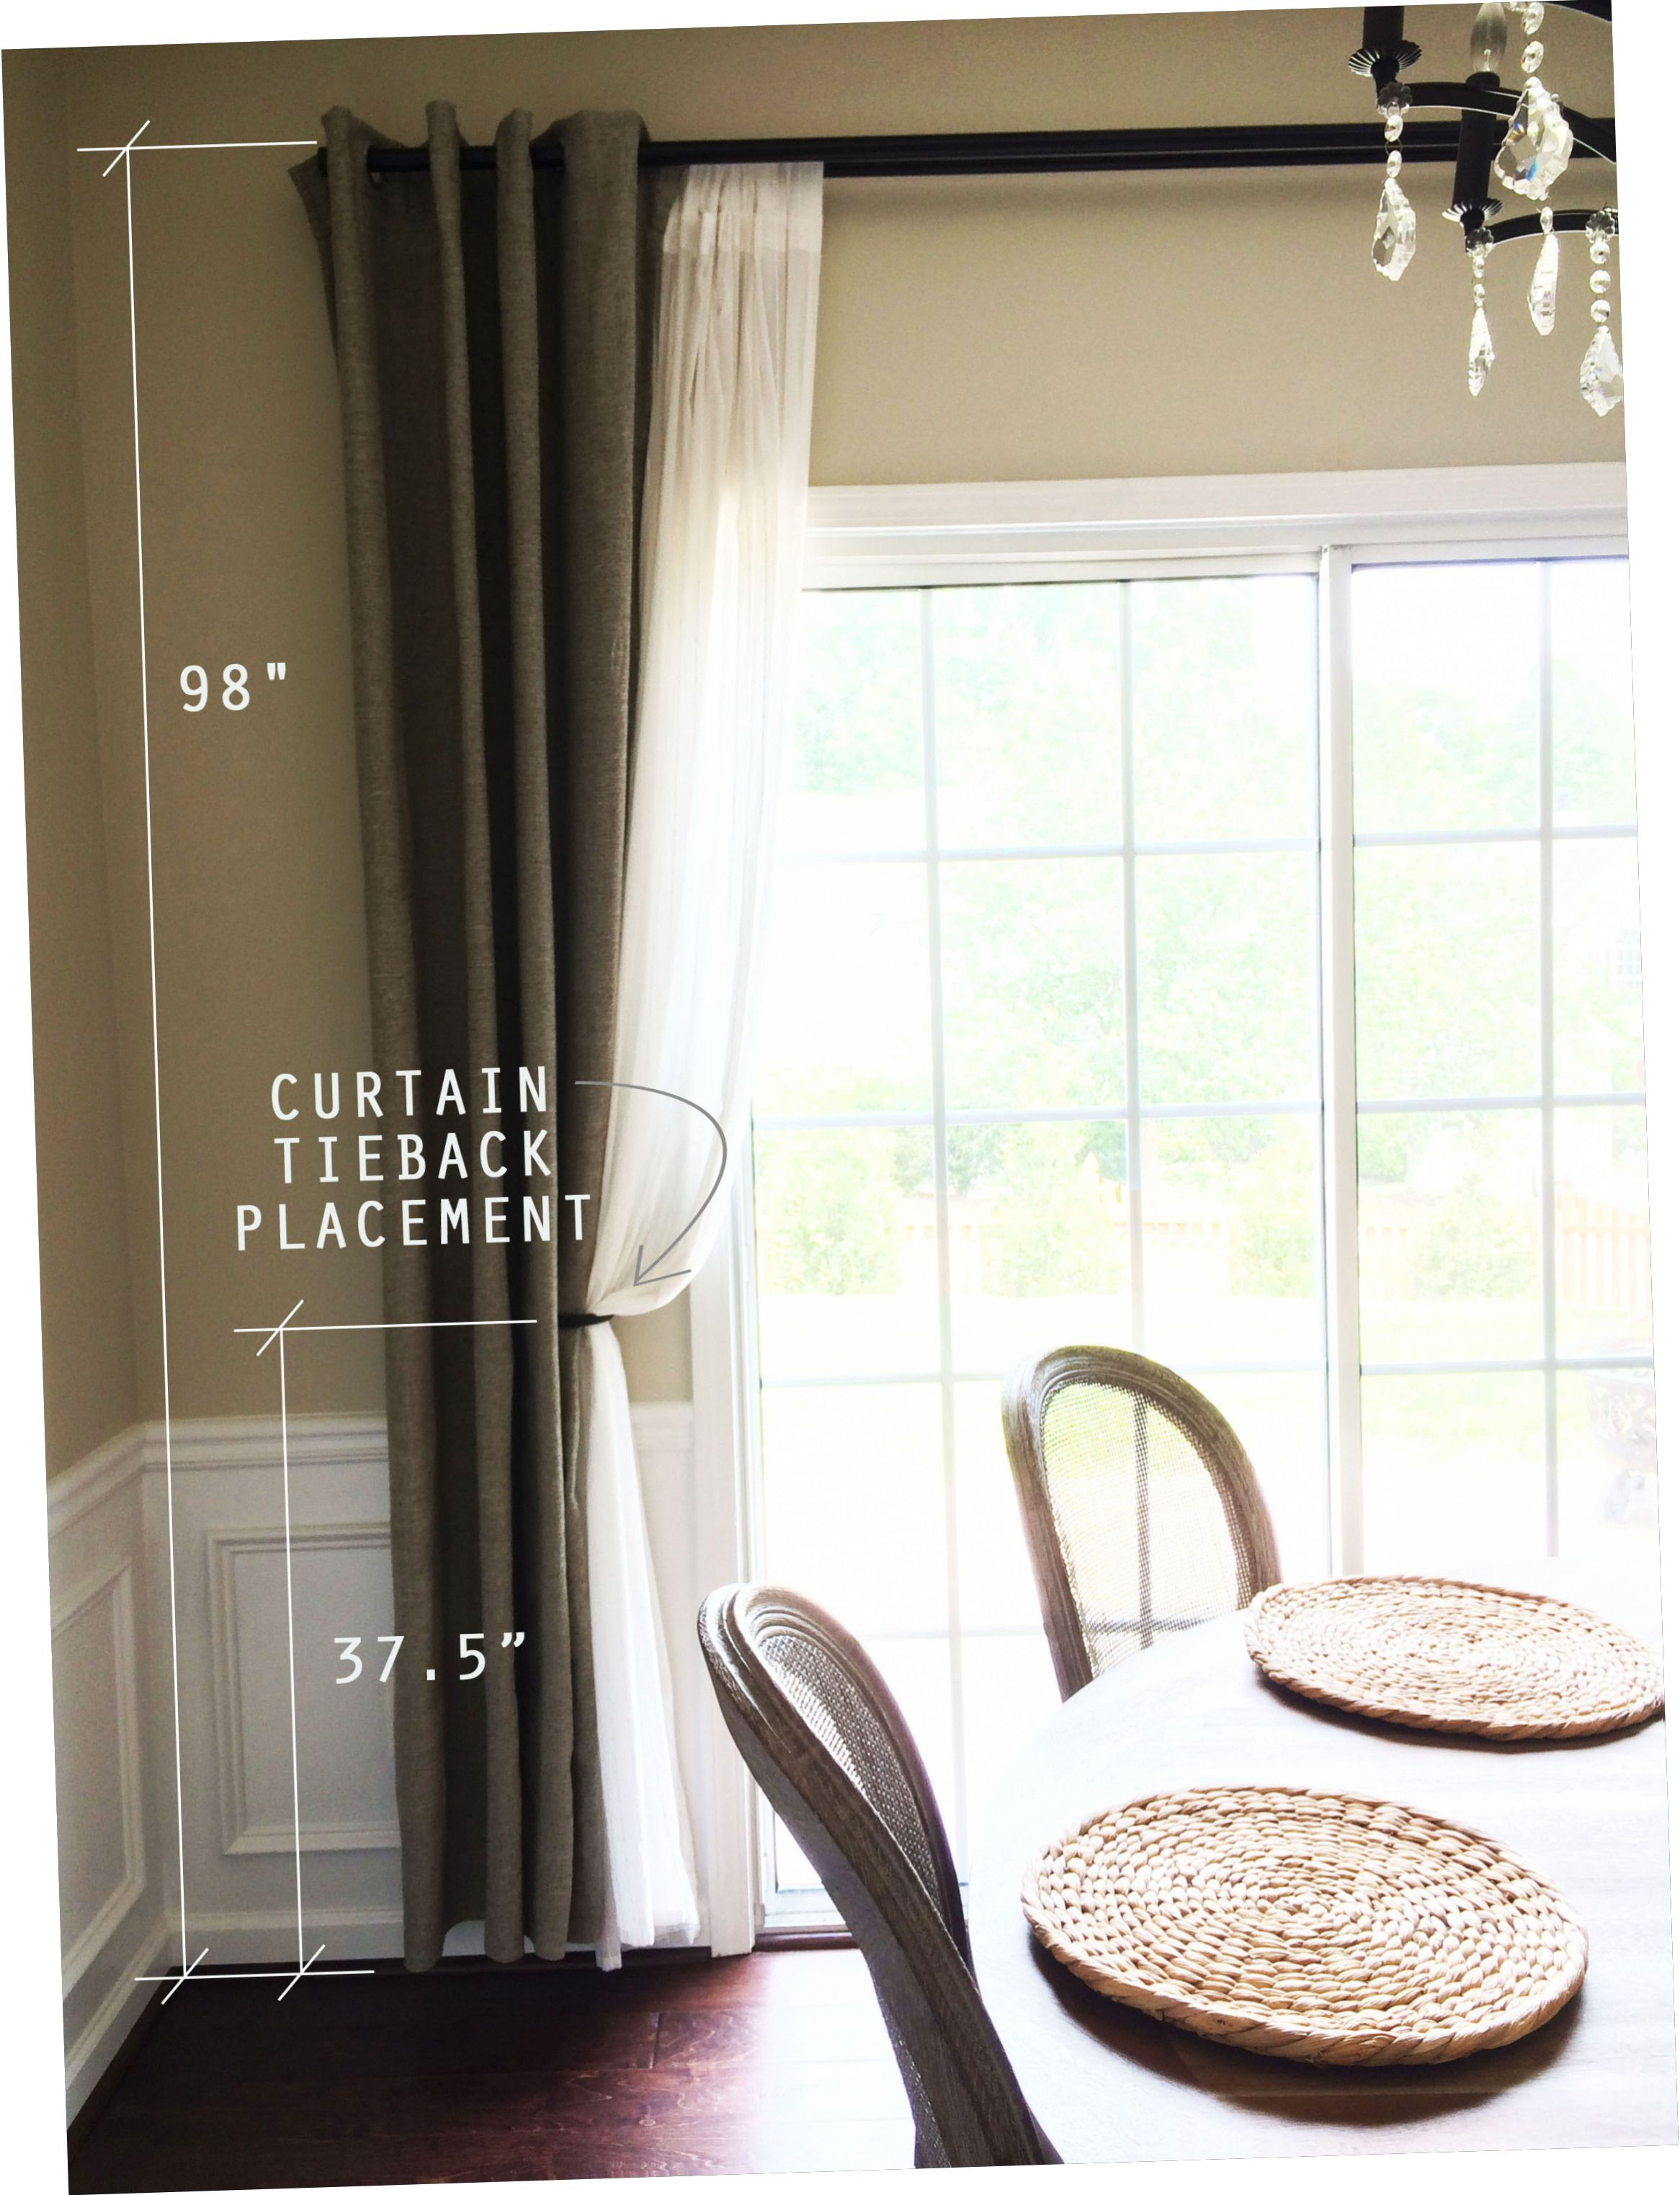 Where To Mount Curtain Tie Backs Image Collections Norahbennett